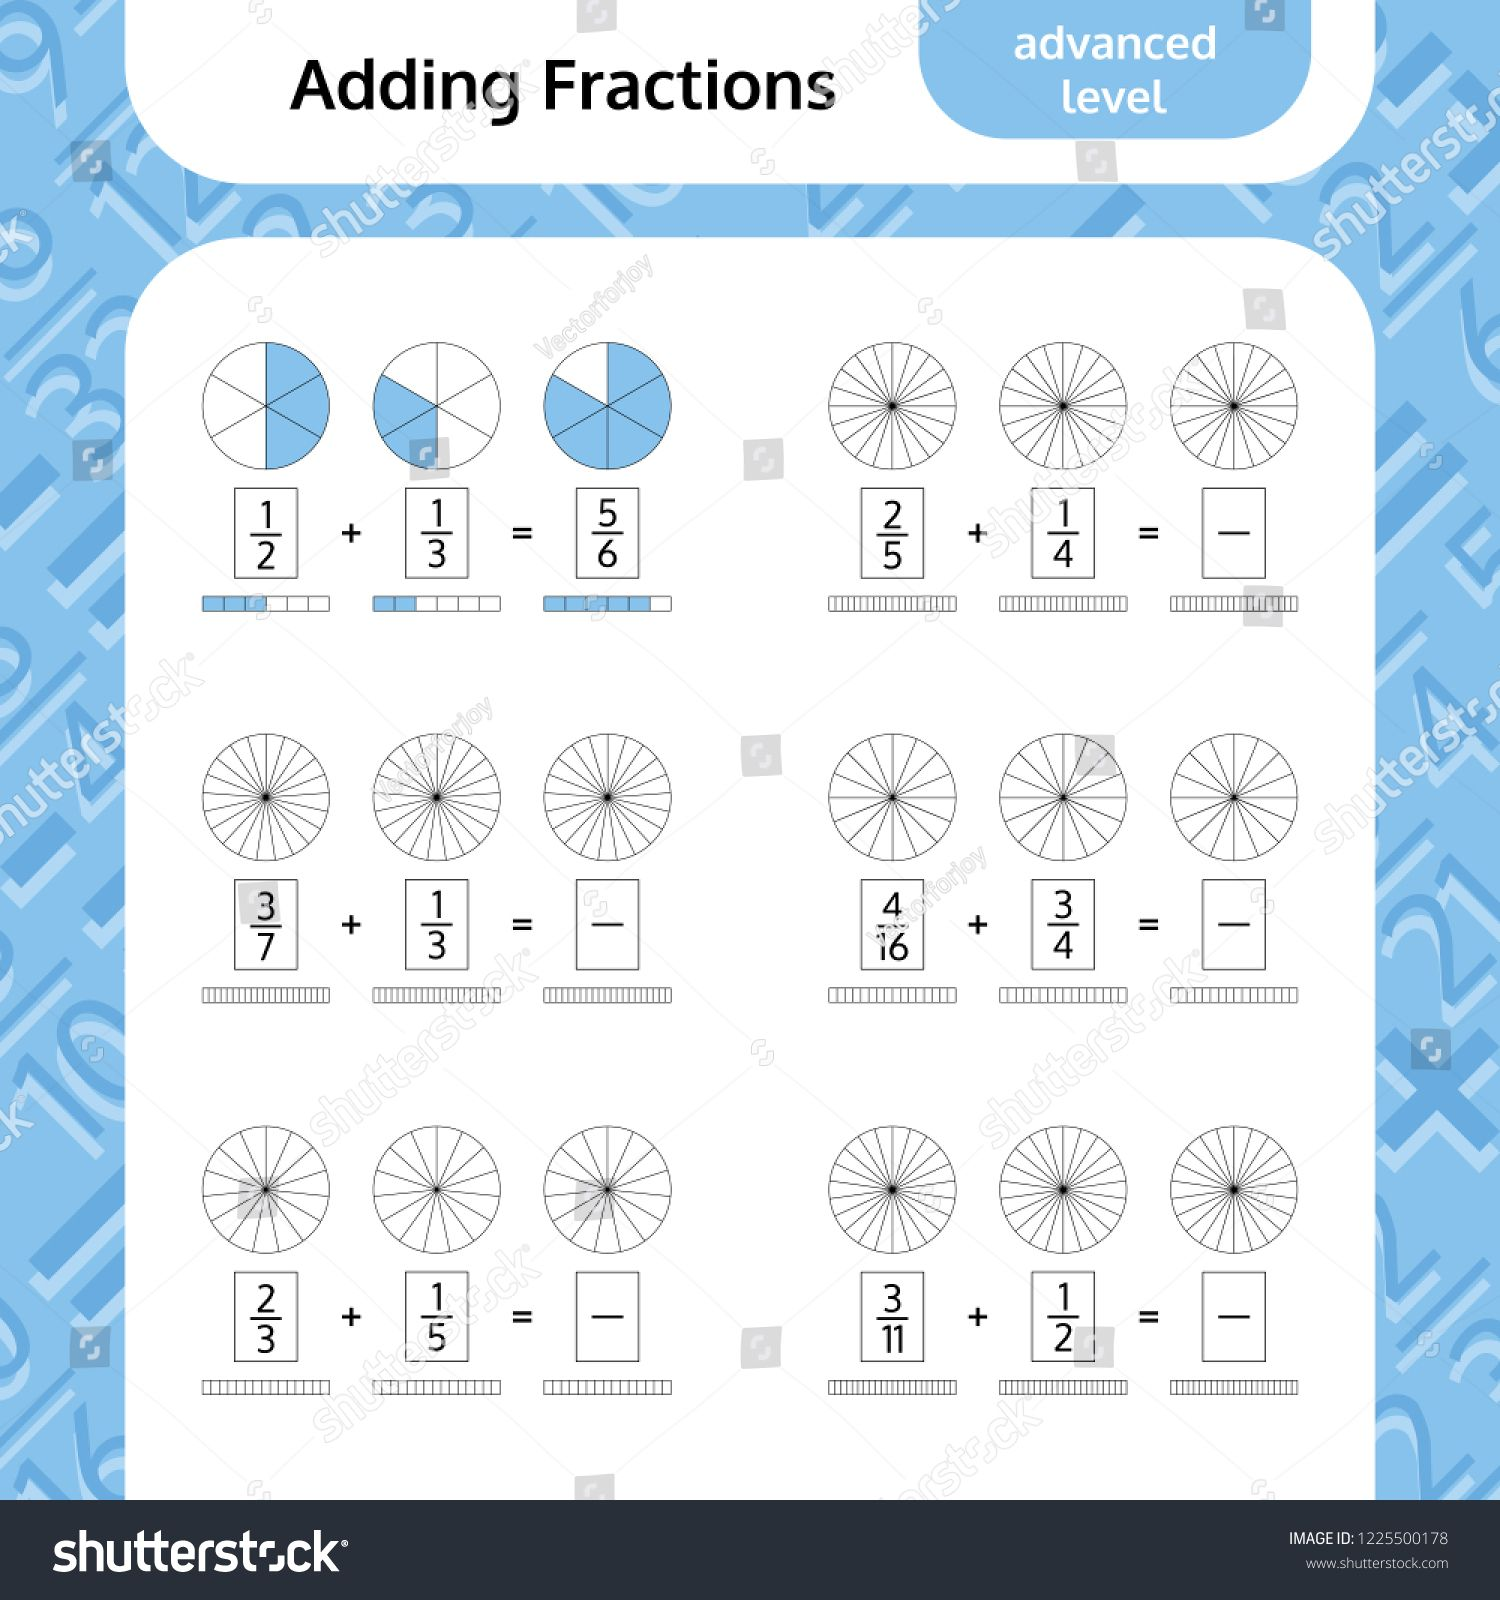 Adding Fractions Mathematical Worksheet Coloring Book